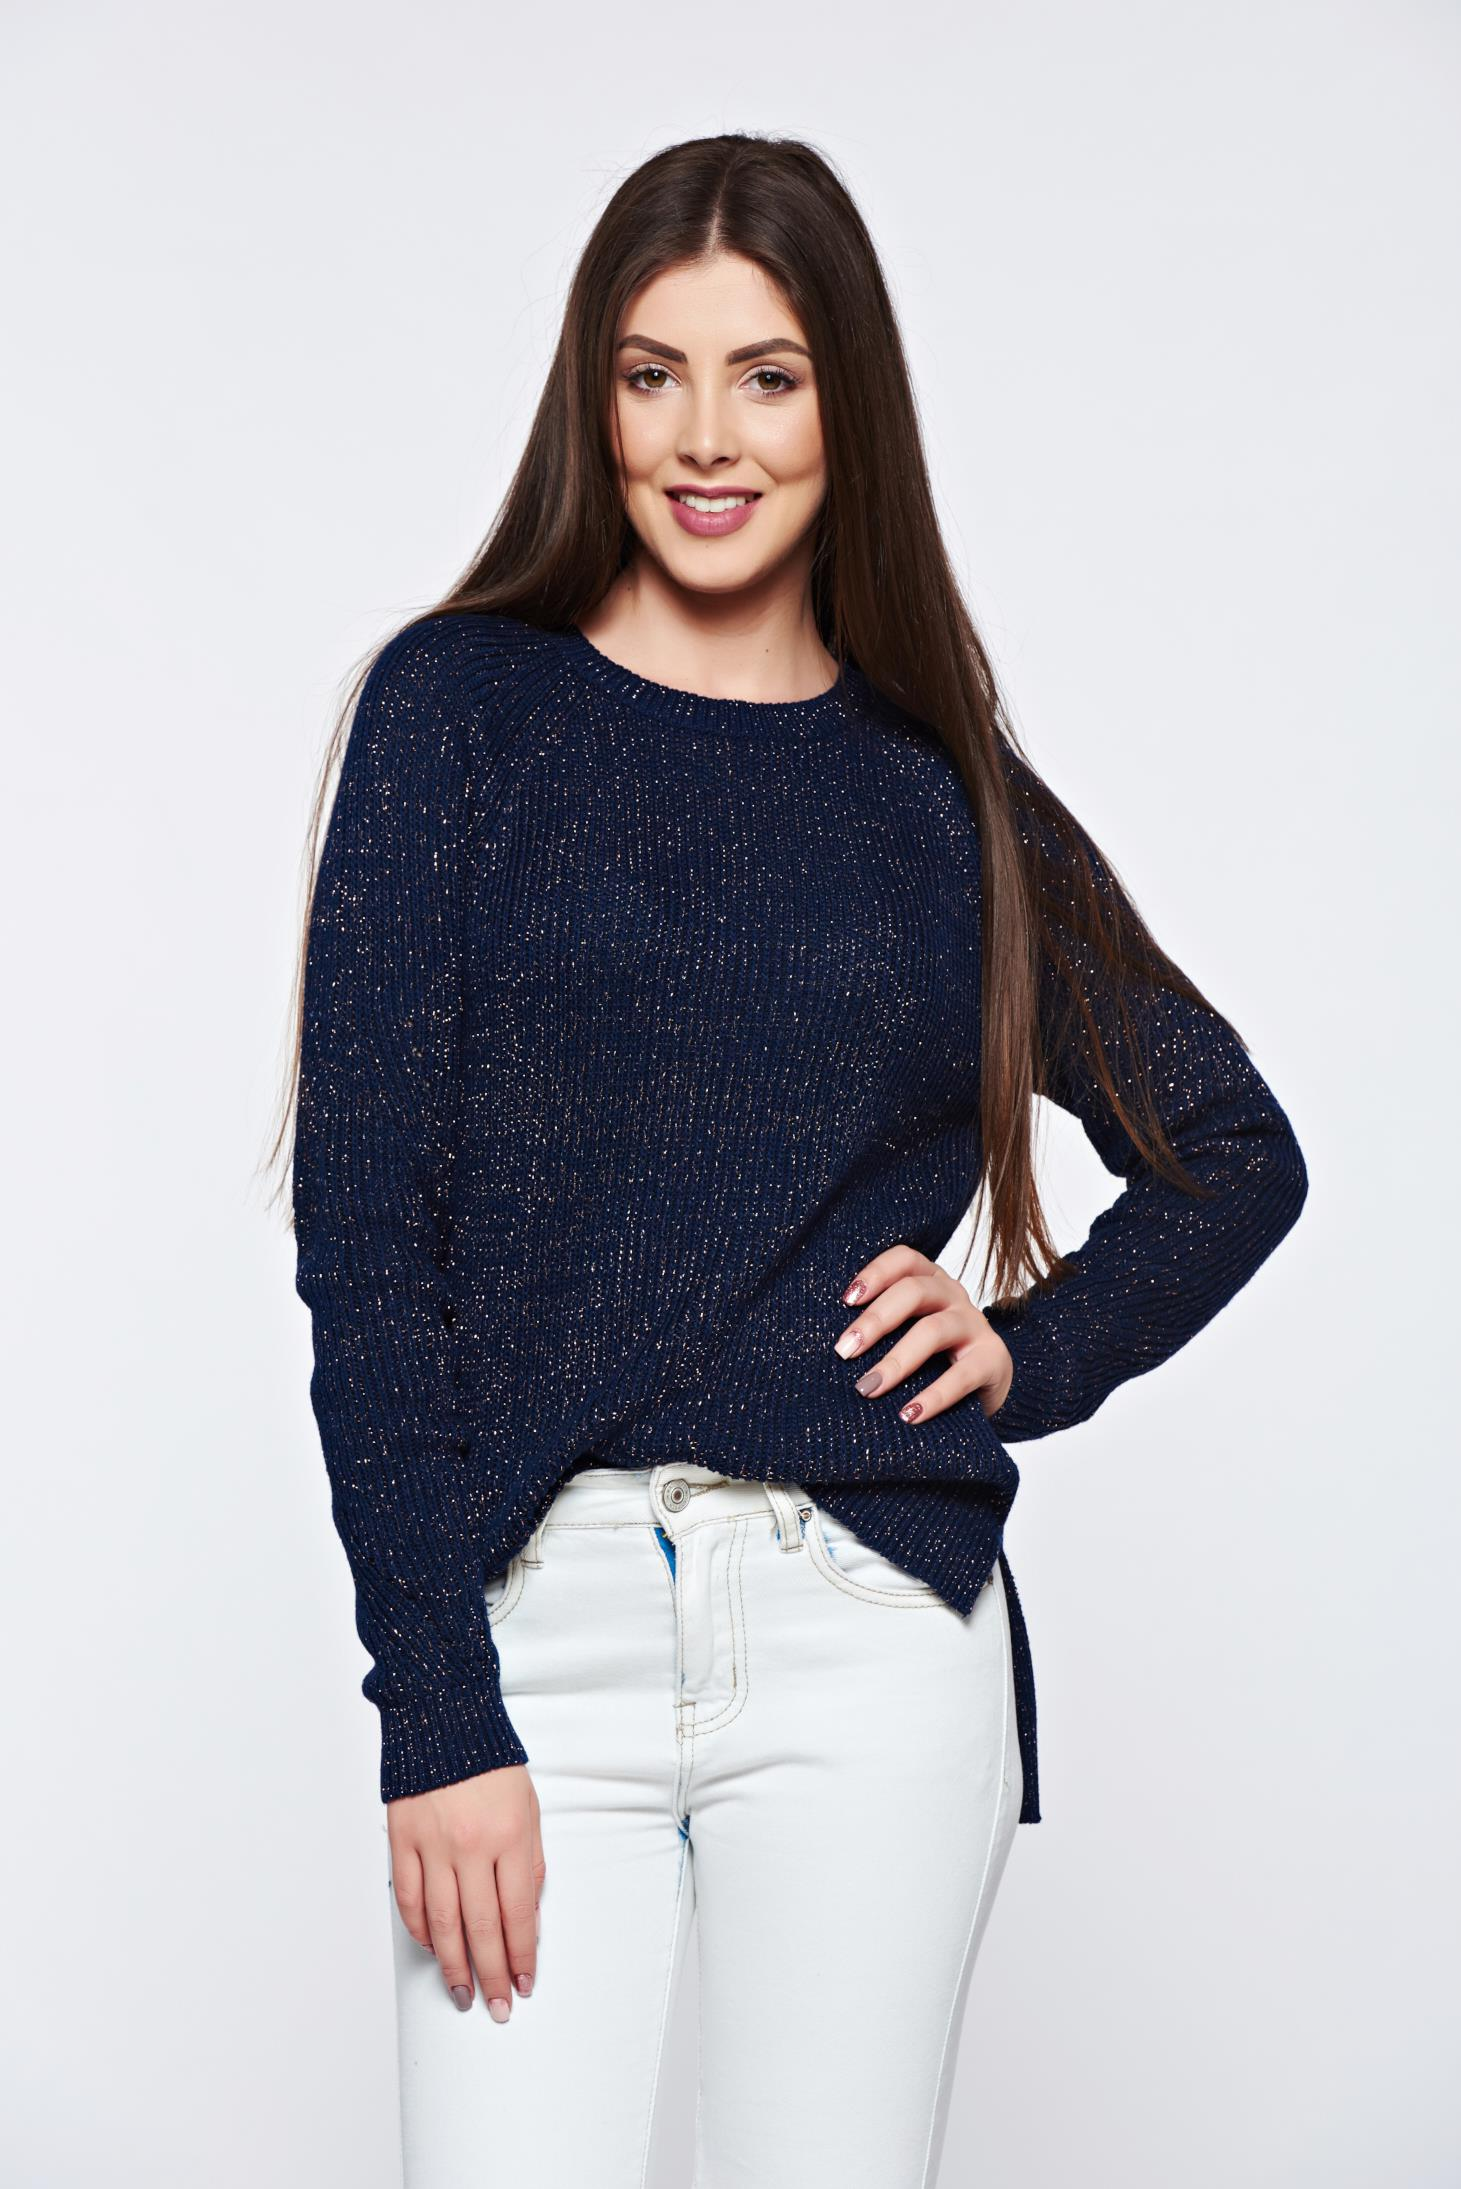 Top Secret darkblue sweater knitted with lame thread with easy cut ...